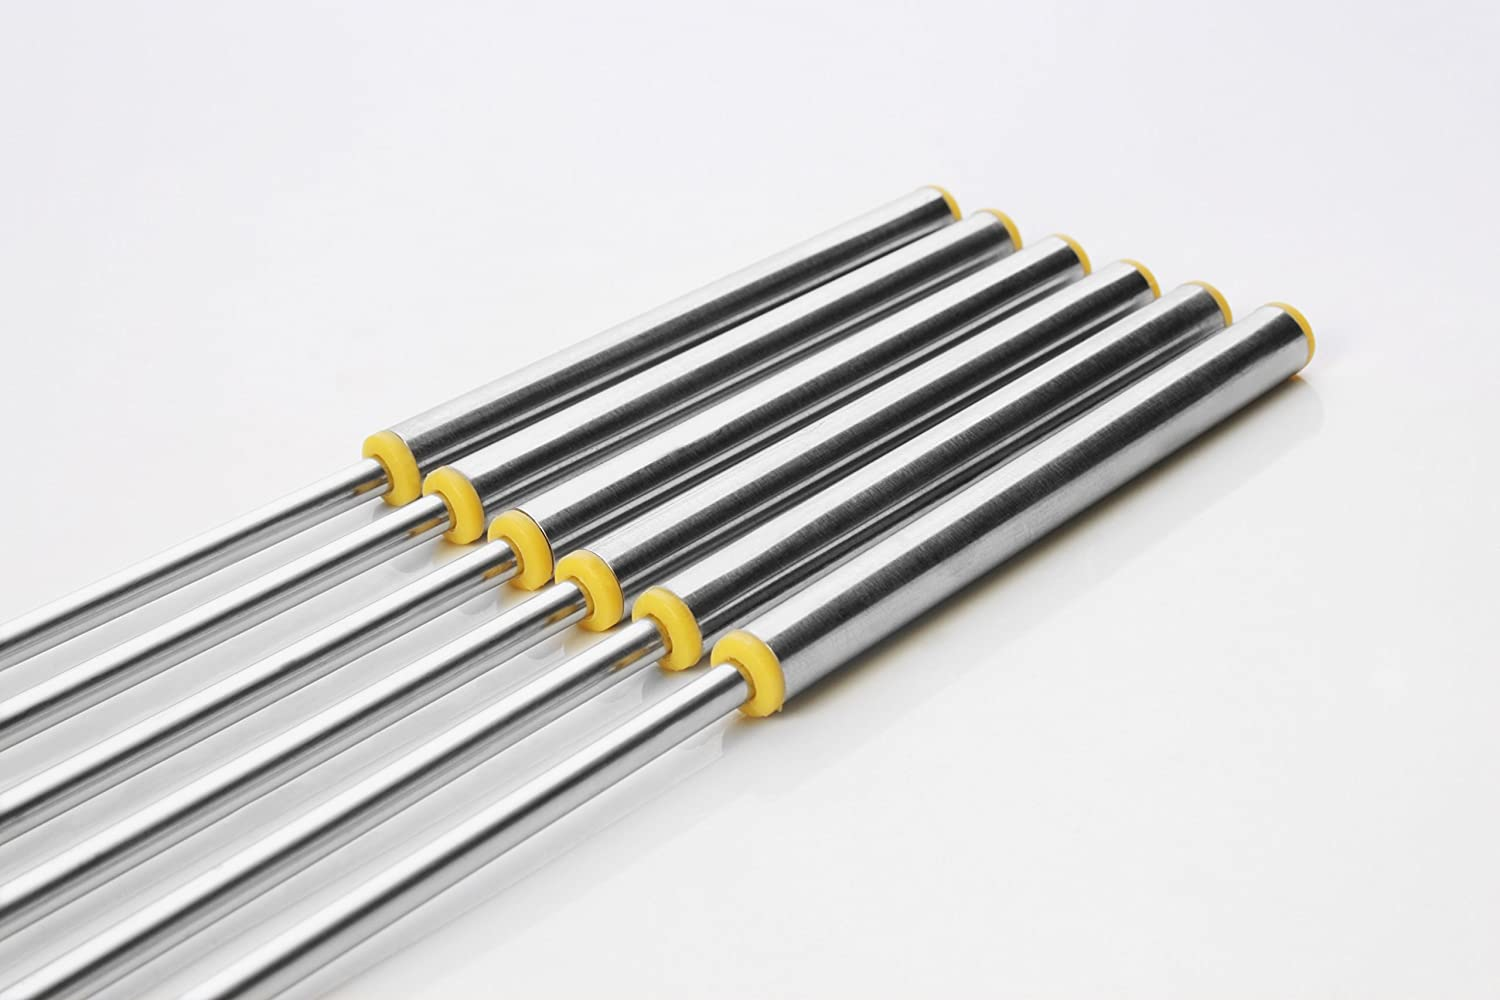 Set of 6 Artestia Stainless Steel Cheese Fondue Forks with Heat Resistant Handle 10.2 inch AR-81002